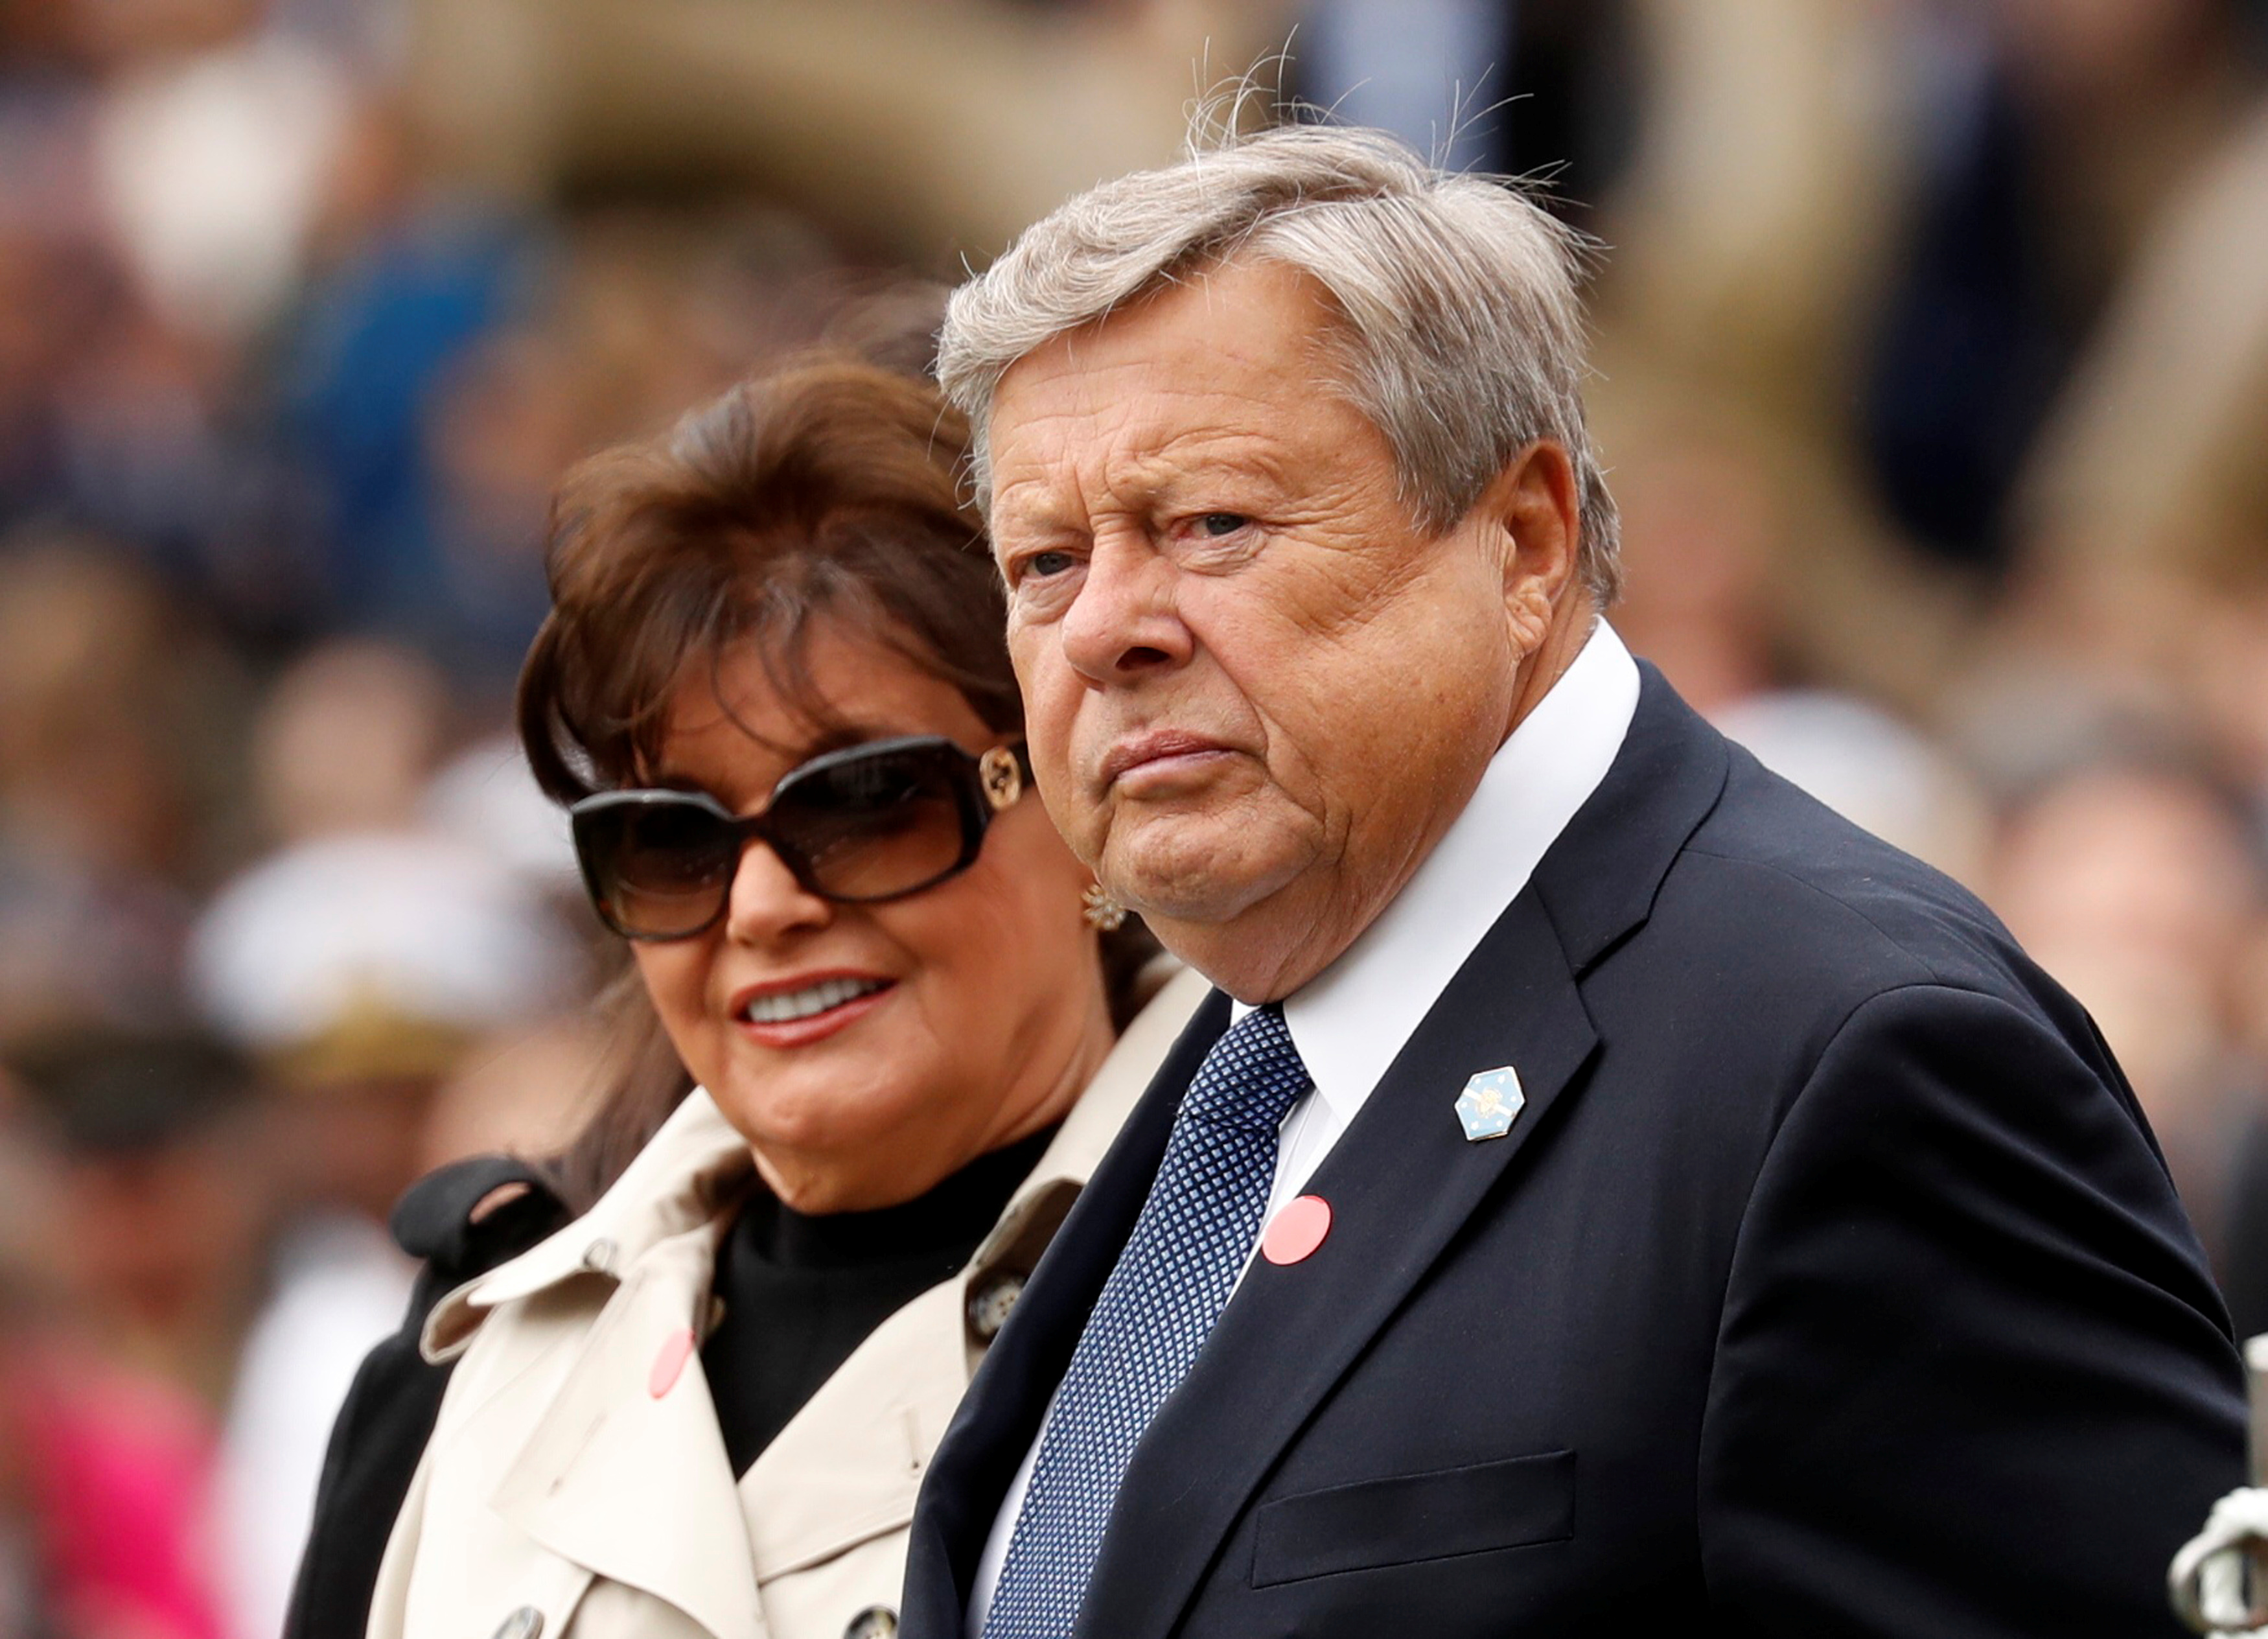 The parents of U.S. first lady Melania Trump, Viktor and Amalija Knavs, await the start of the official arrival ceremony held by U.S. President Donald Trump and Mrs. Trump for French President Emmanuel Macron and his wife Brigitte Macron on the South Lawn of the White House in Washington, U.S., April 24, 2018. REUTERS/Kevin Lamarque